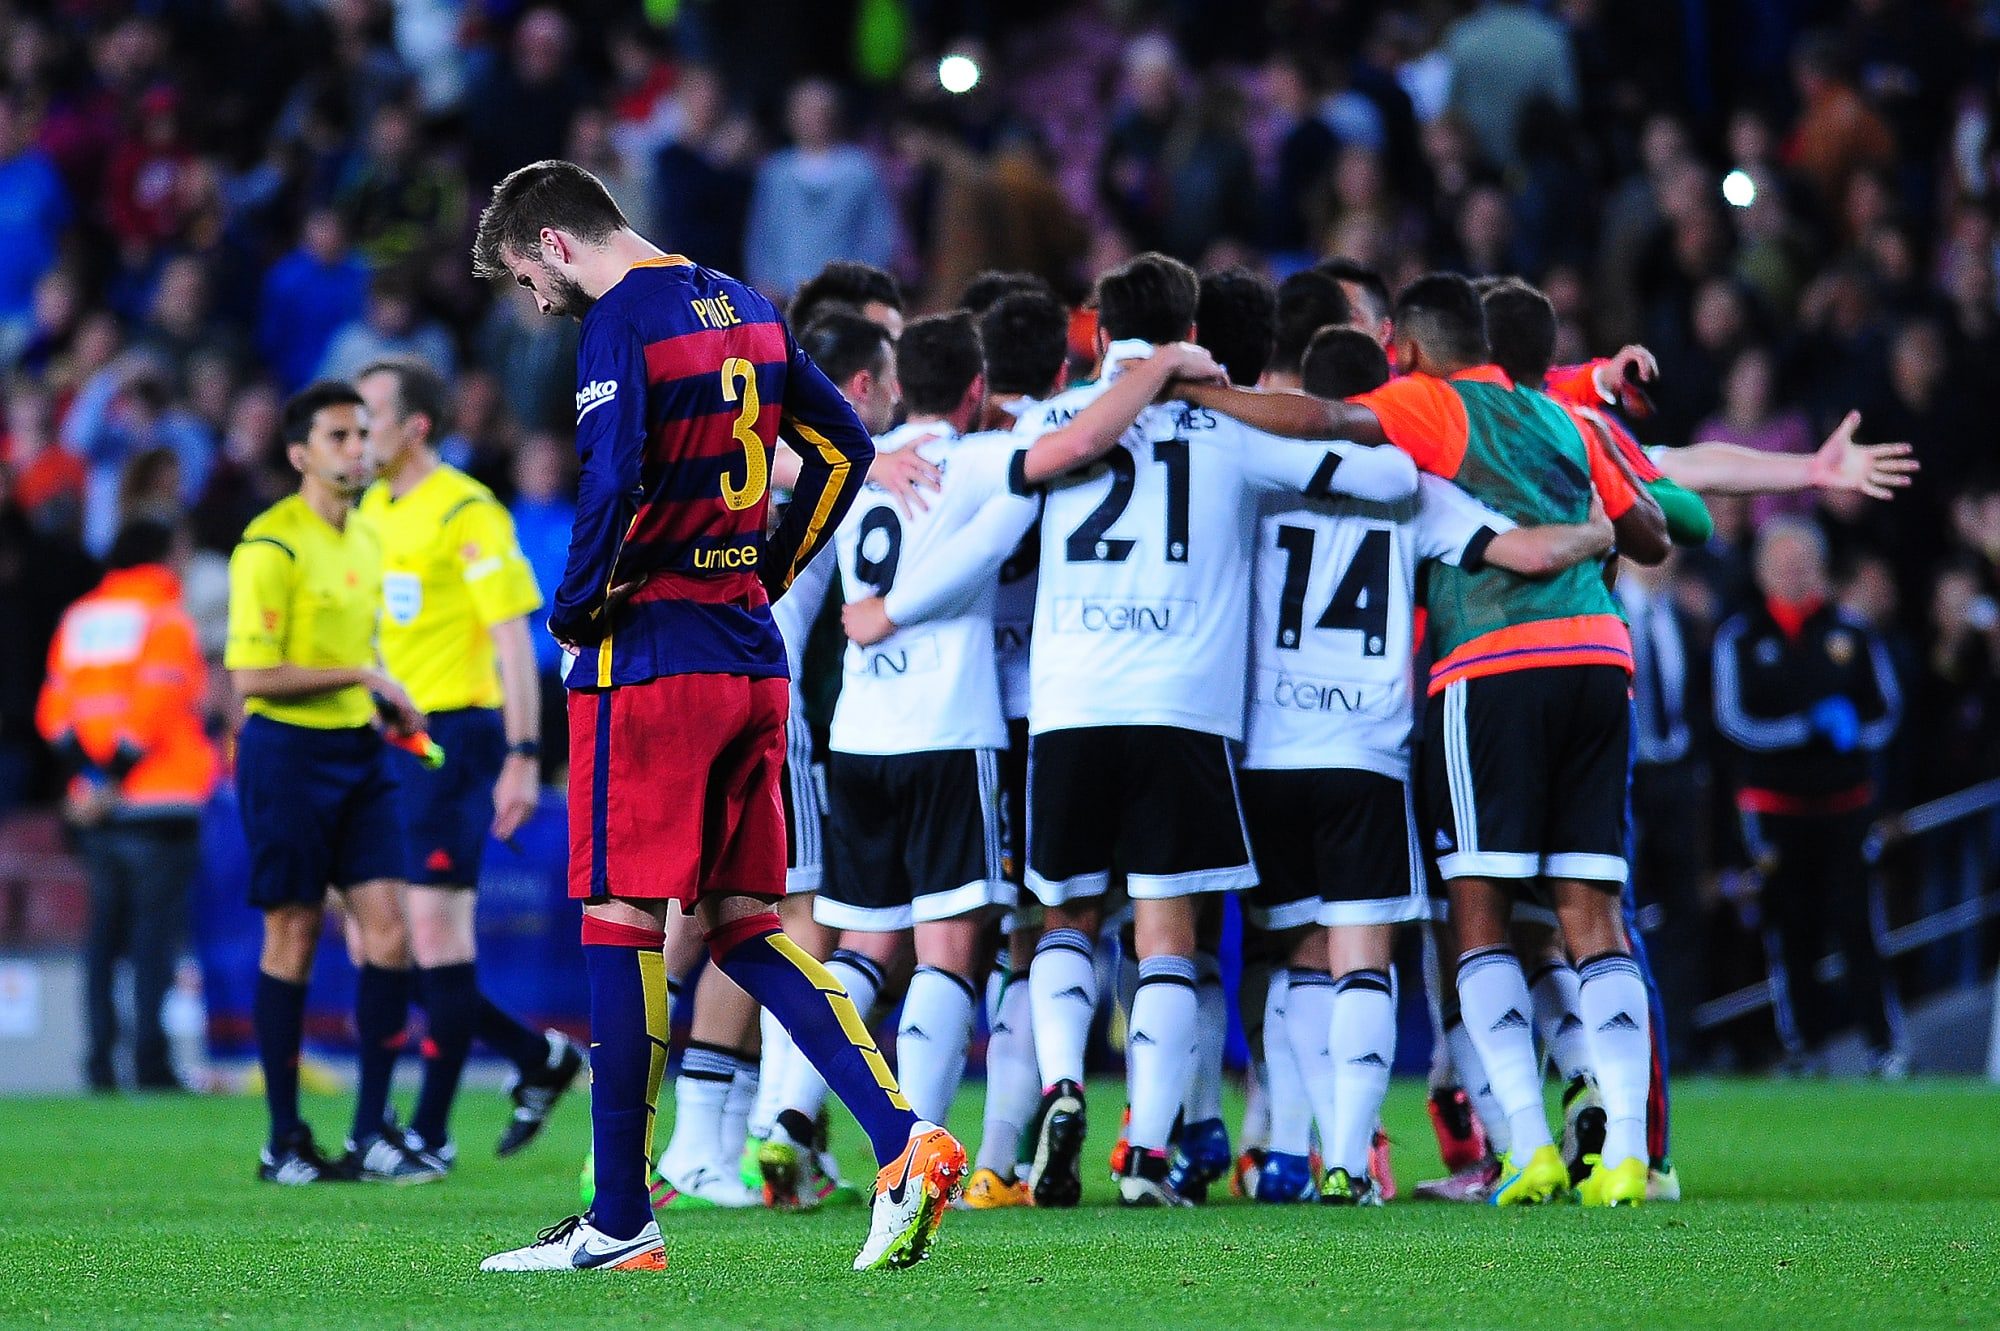 Valencia vs Barcelona: Preview and Projected Lineups